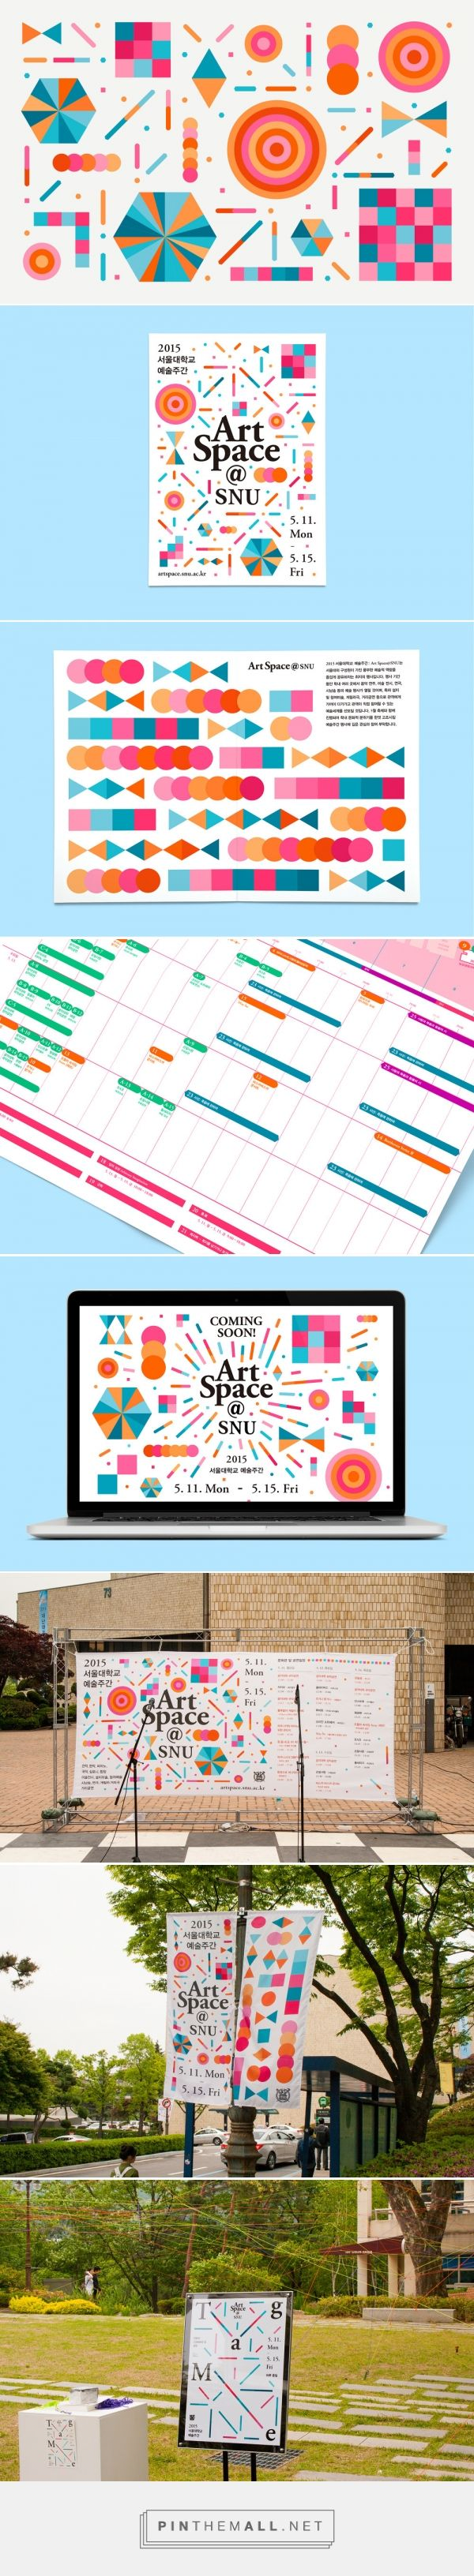 Leaflet and applications for Artspace@SNU festival on Behance - created via…